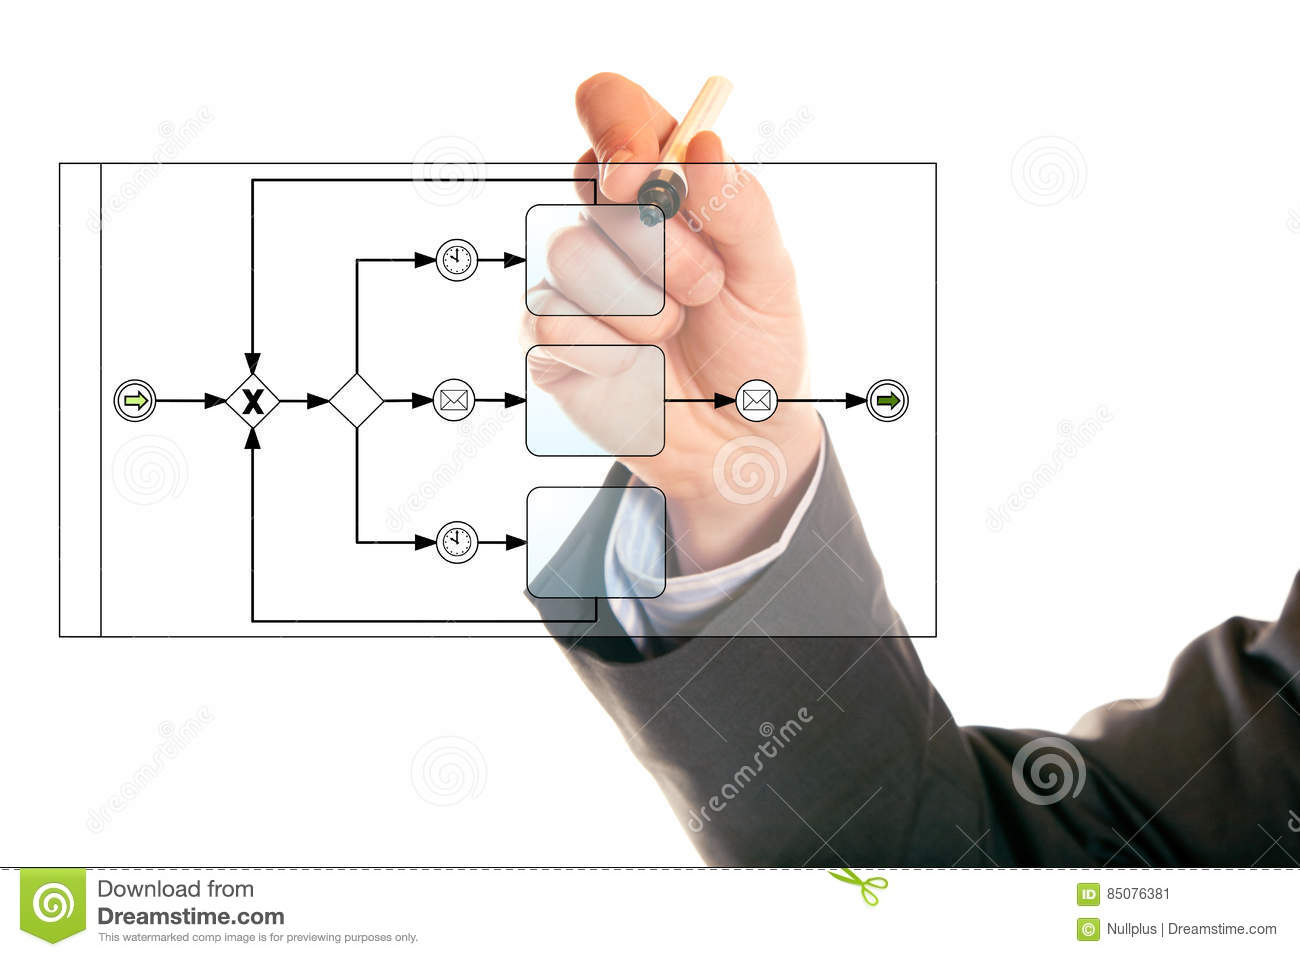 Businessman Drawing A Bpmn Diagram Stock Image Of Analyzing Process Flow Using Notation Business Modelling